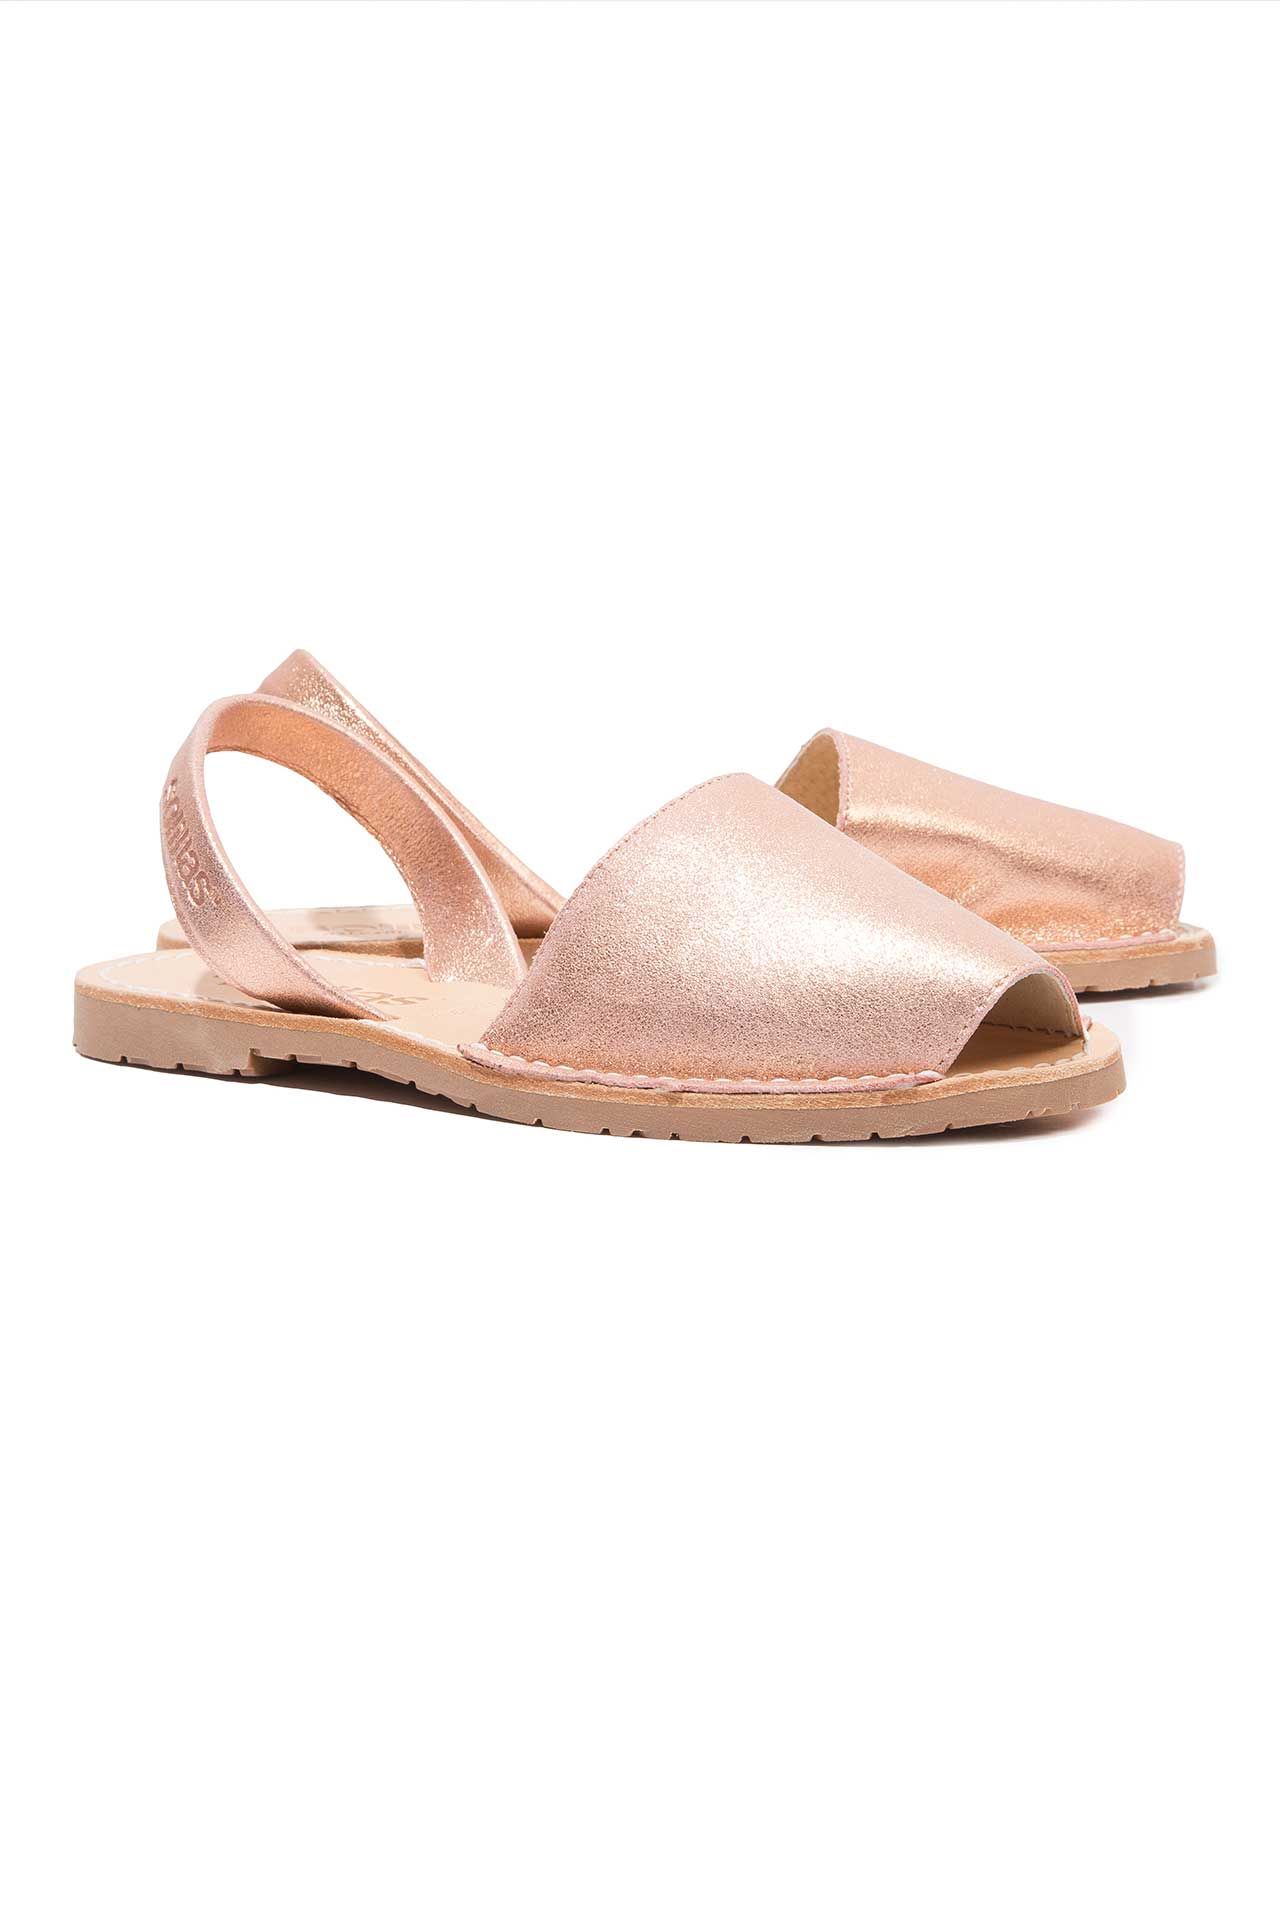 Rose Gold Leather Menorcan Sandals - Rose gold Solillas PLlatO